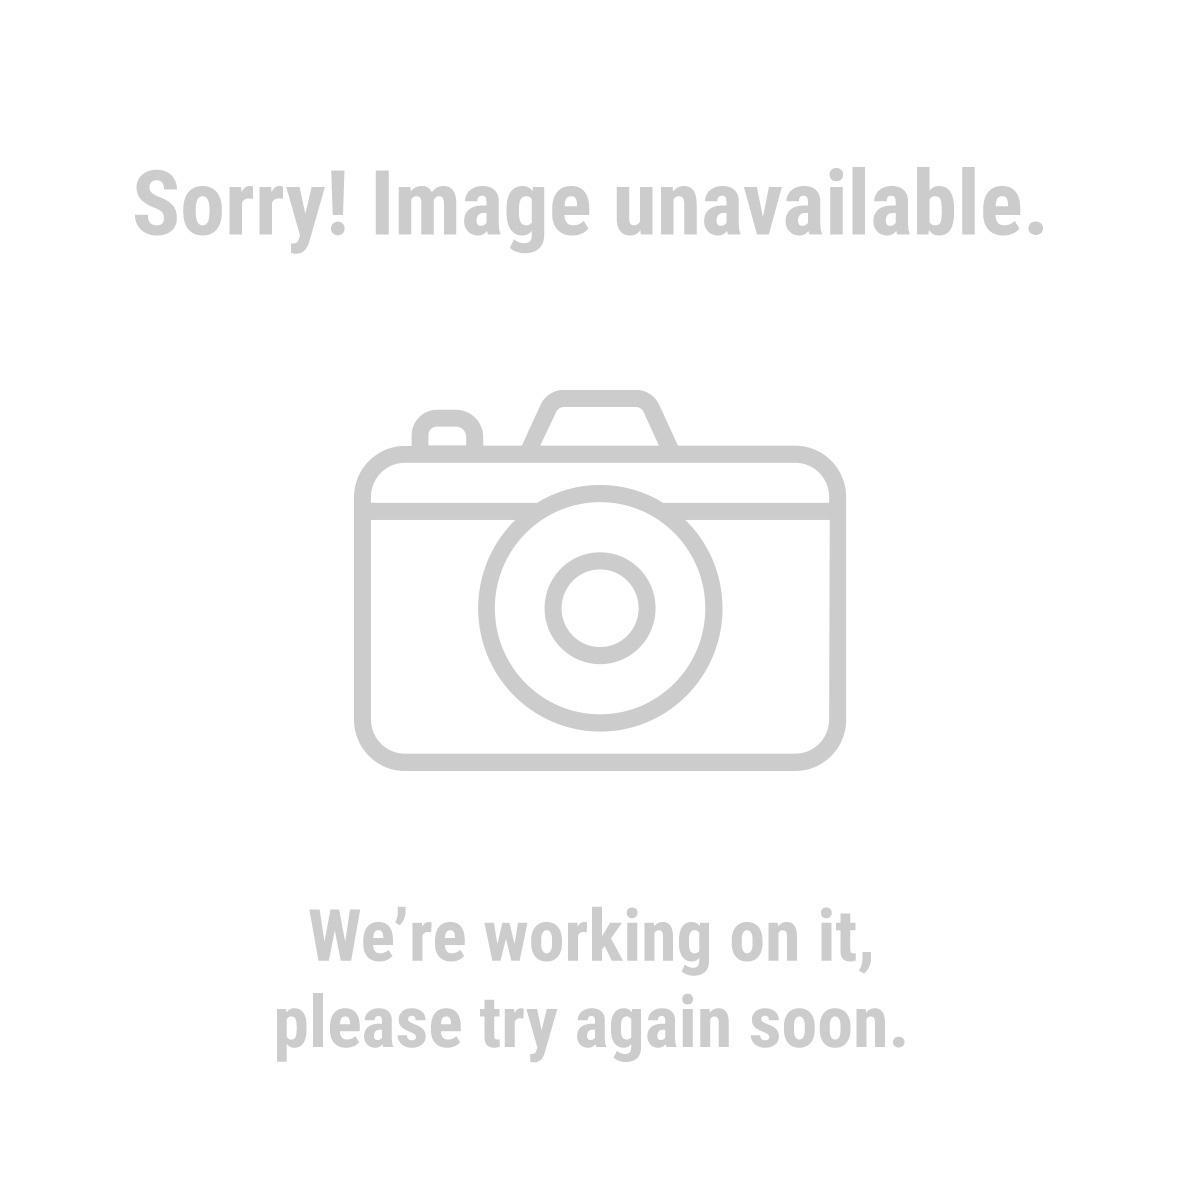 Central Pneumatic Earthquake 62627 1/2 in. Professional Air Impact Wrench